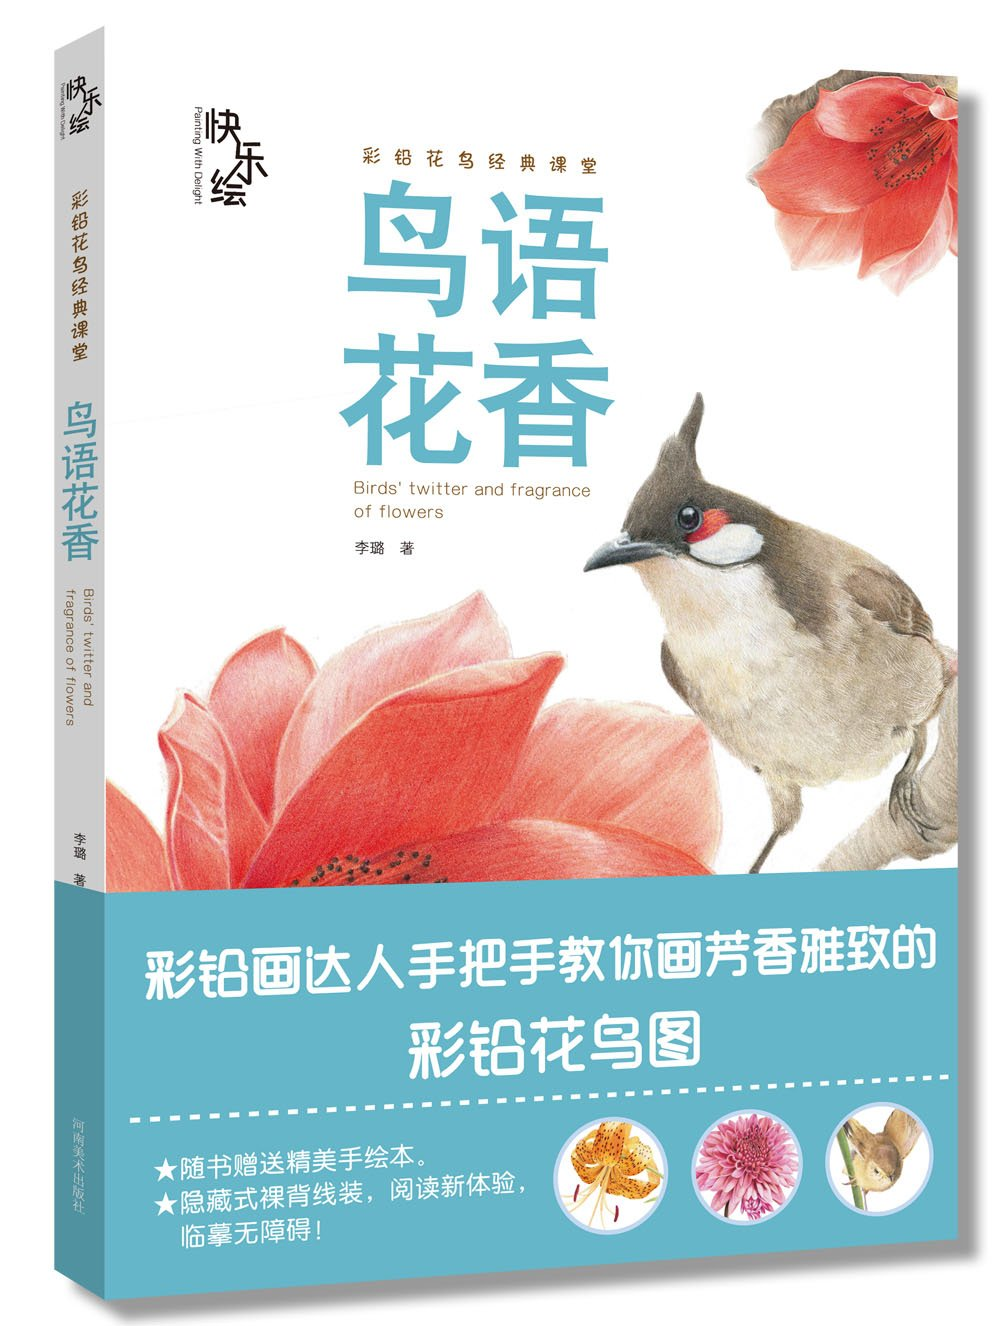 Chinese color pencil tutorial books learning bird flower hand painted techniques of line drawings katharine bates america the beautiful